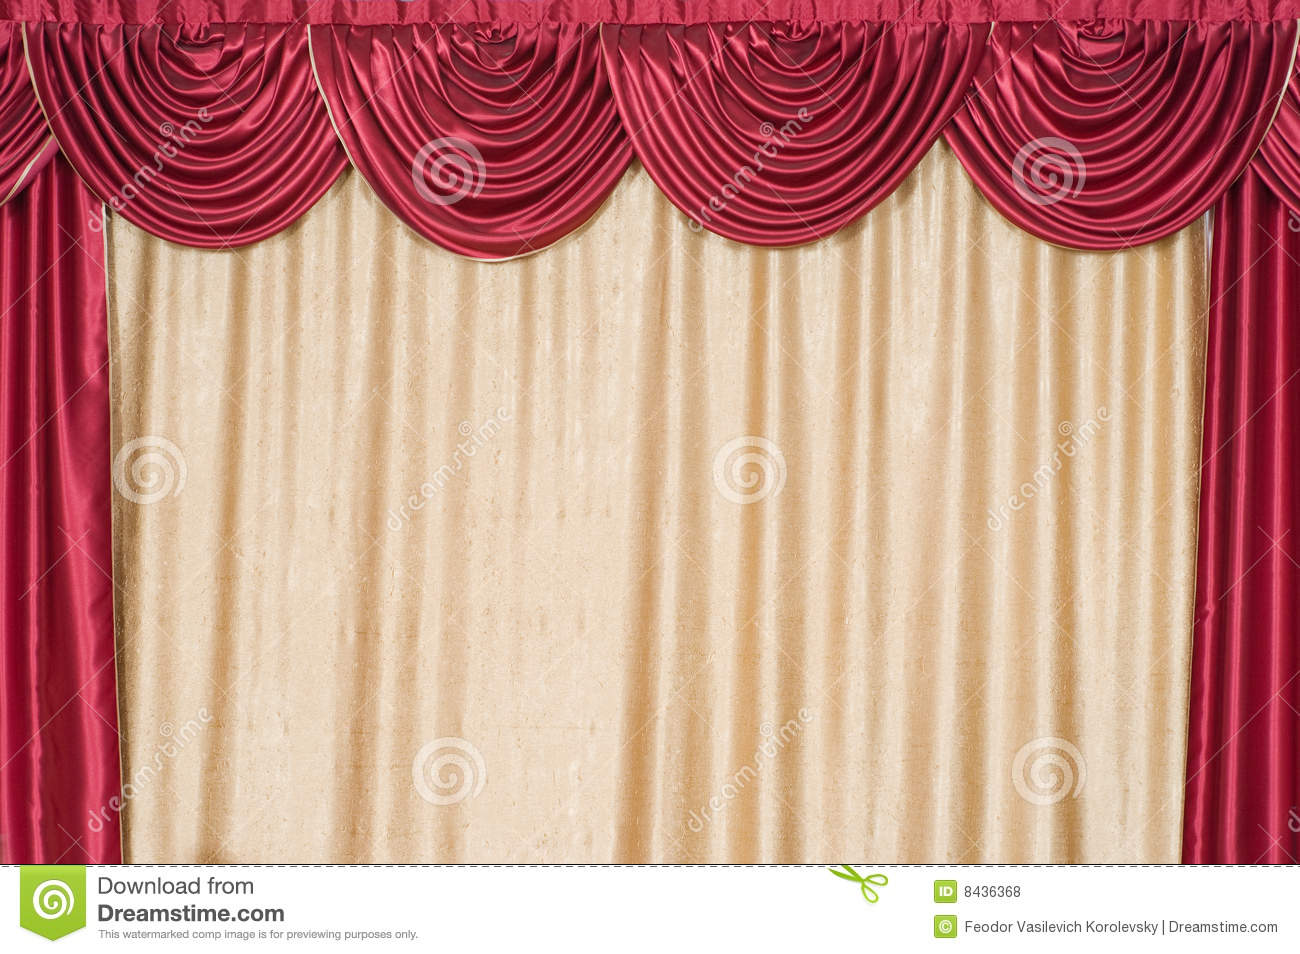 The closed curtain on a scene.